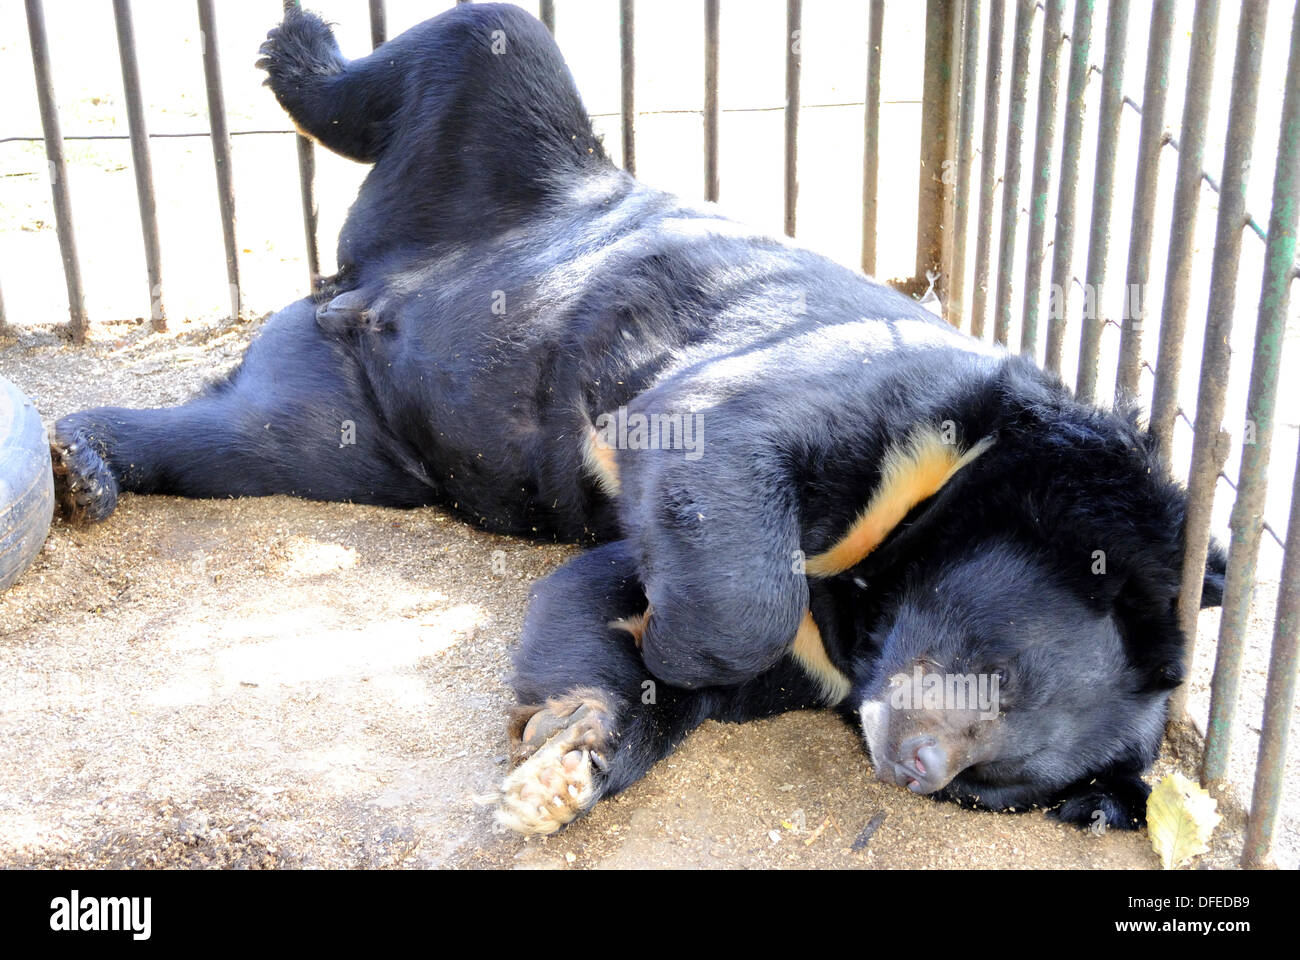 The black bear has a rest, lying in a cage - Stock Image